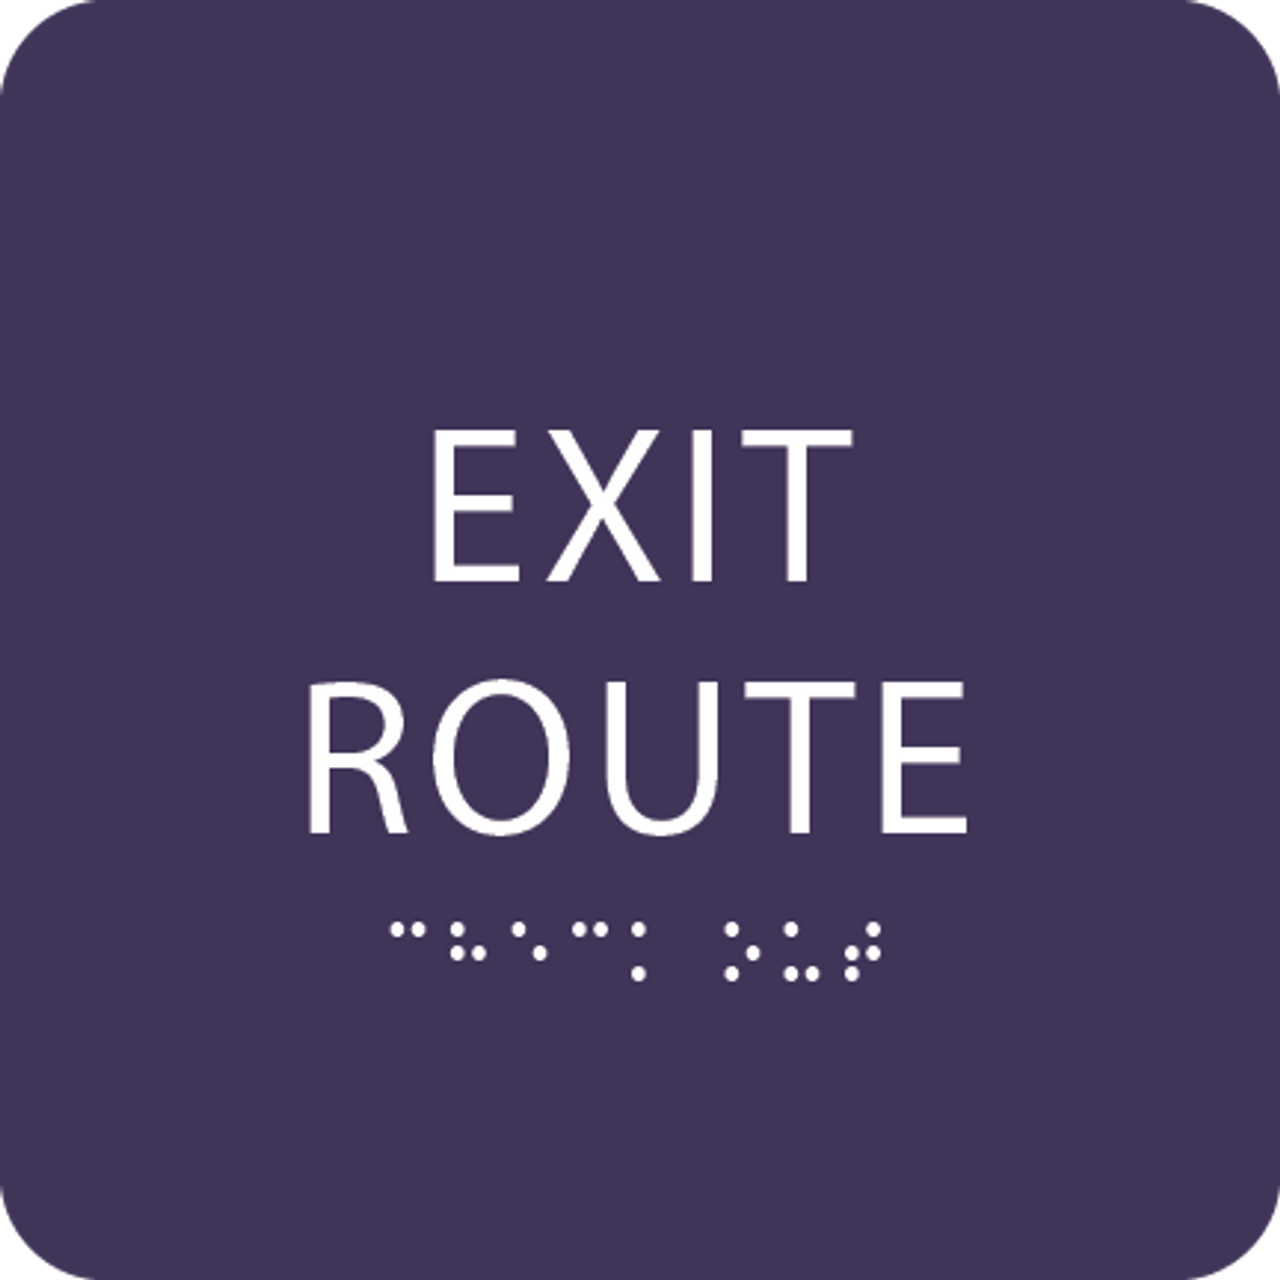 Purple Tactile Exit Route Sign